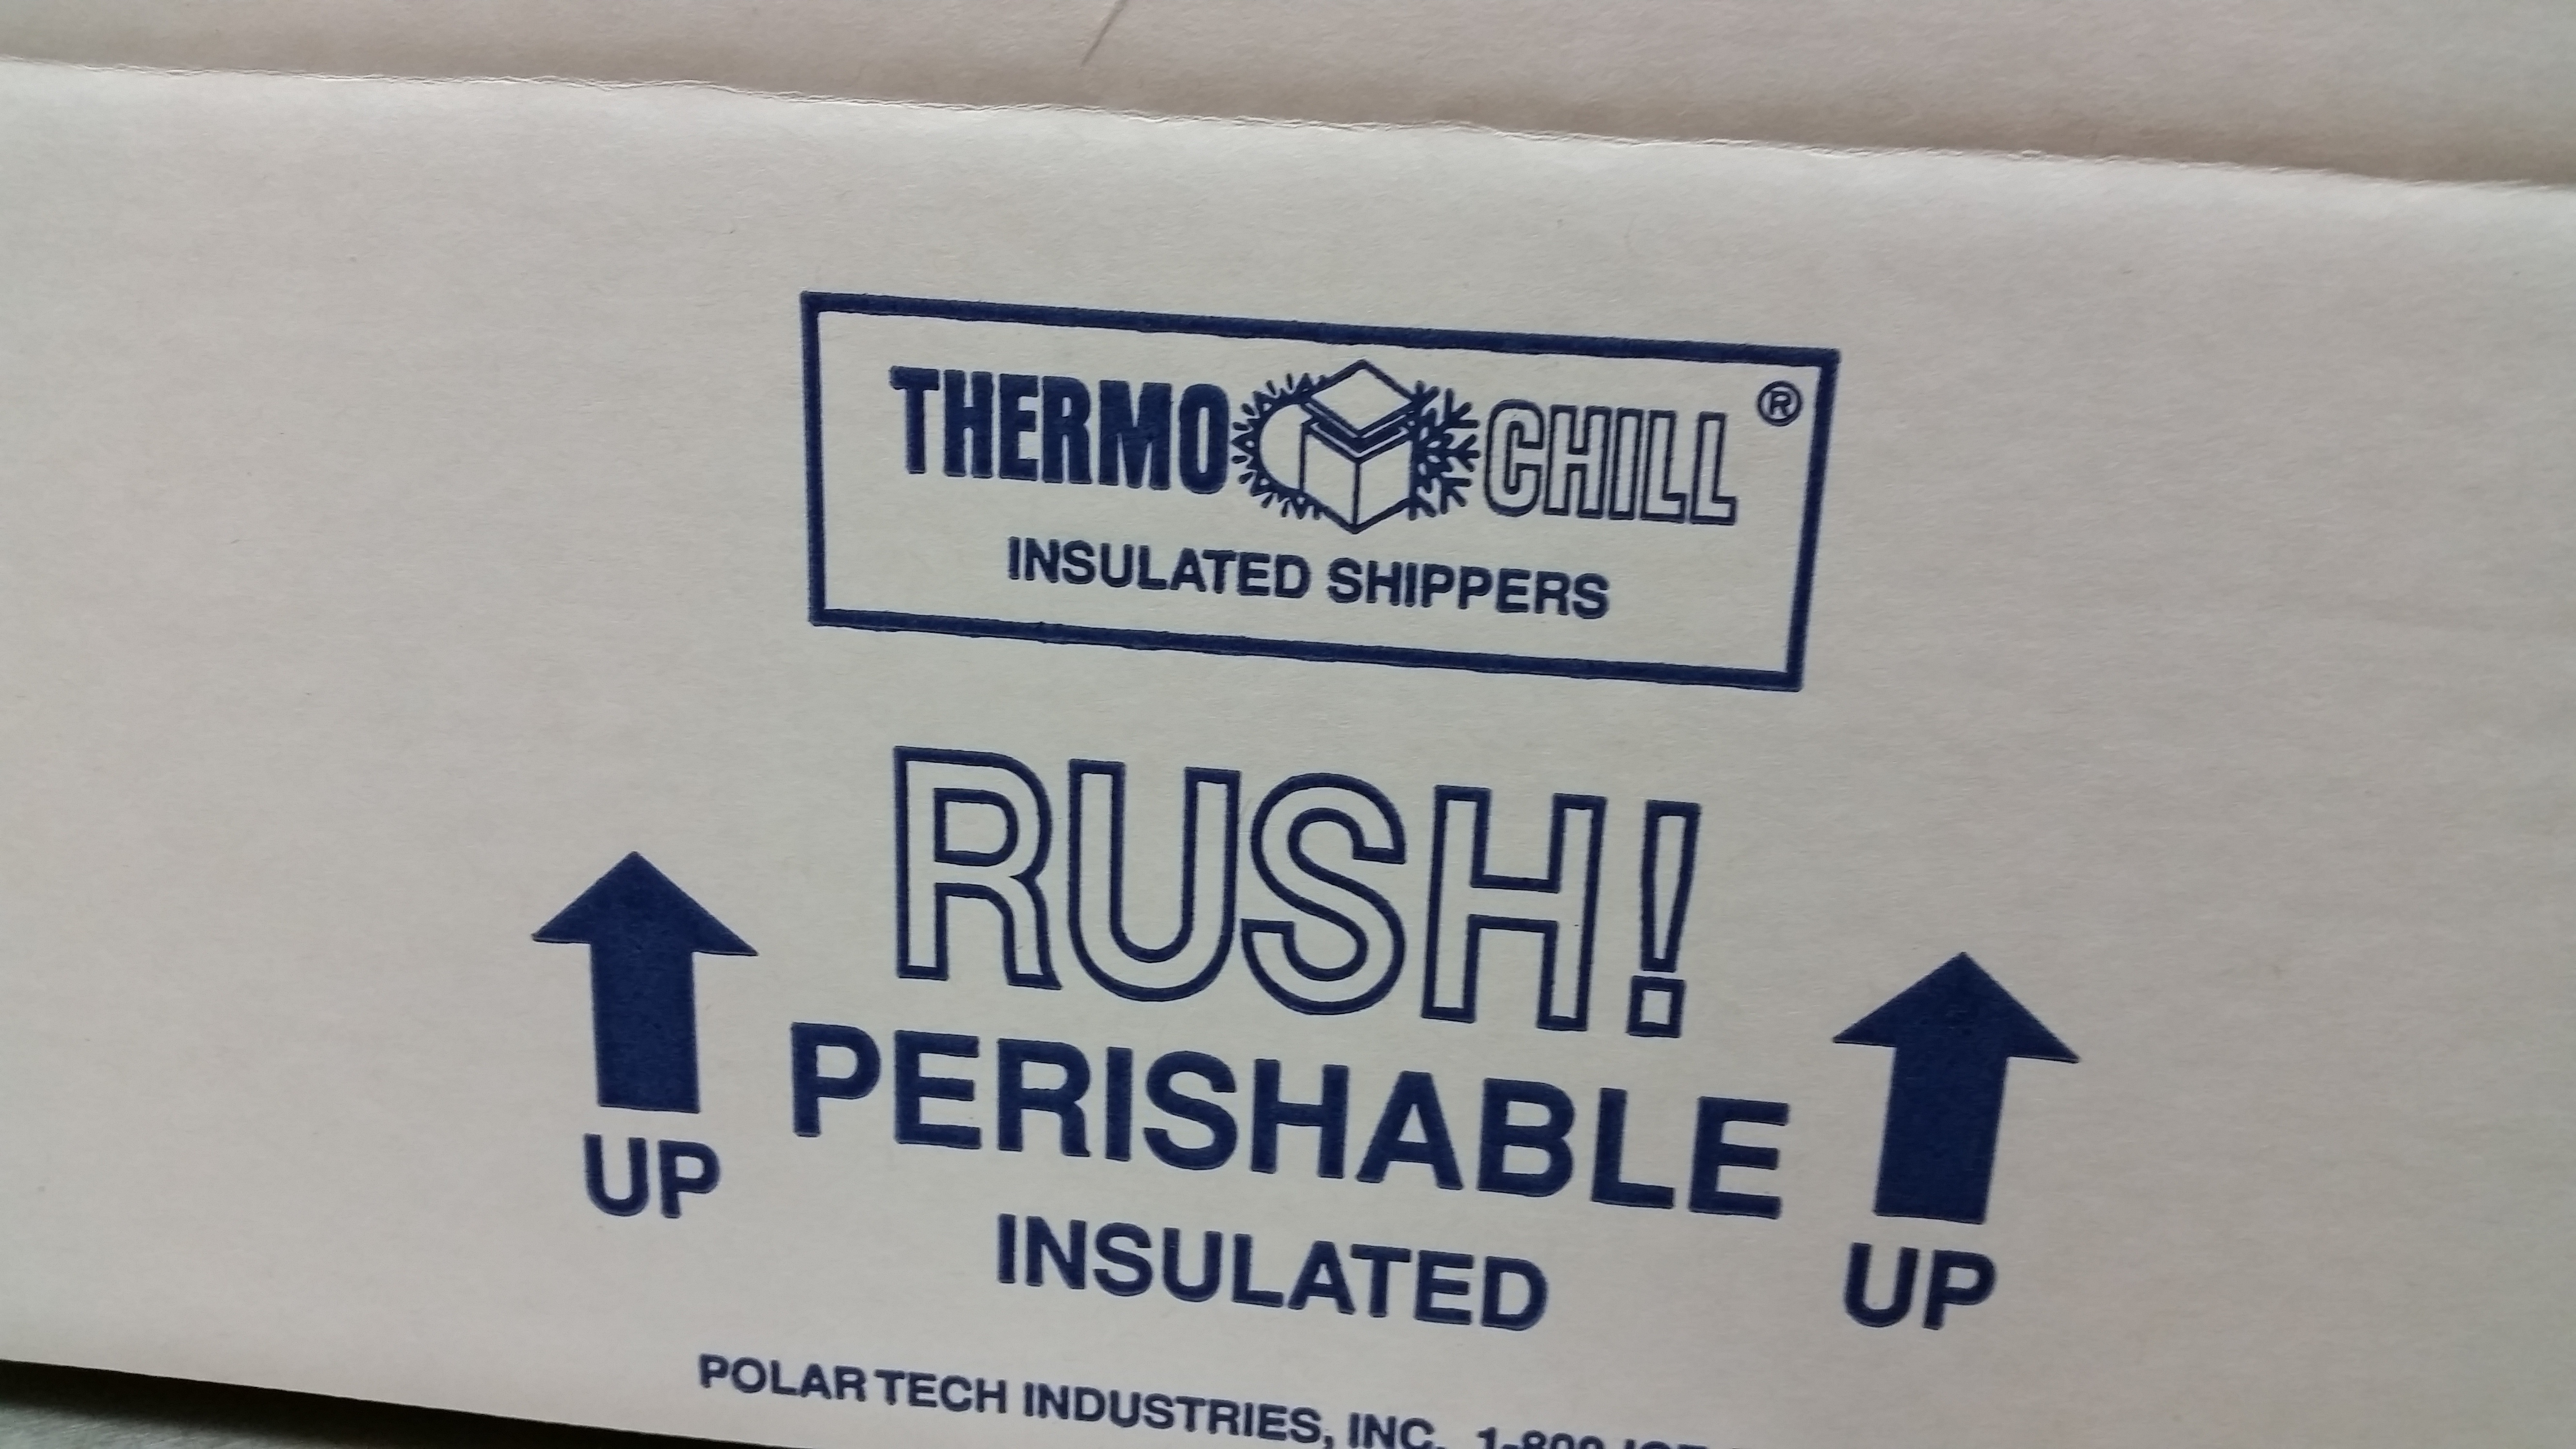 Insulated Container for 2 lbs. to 4 lbs. of Product Ordered ISO18